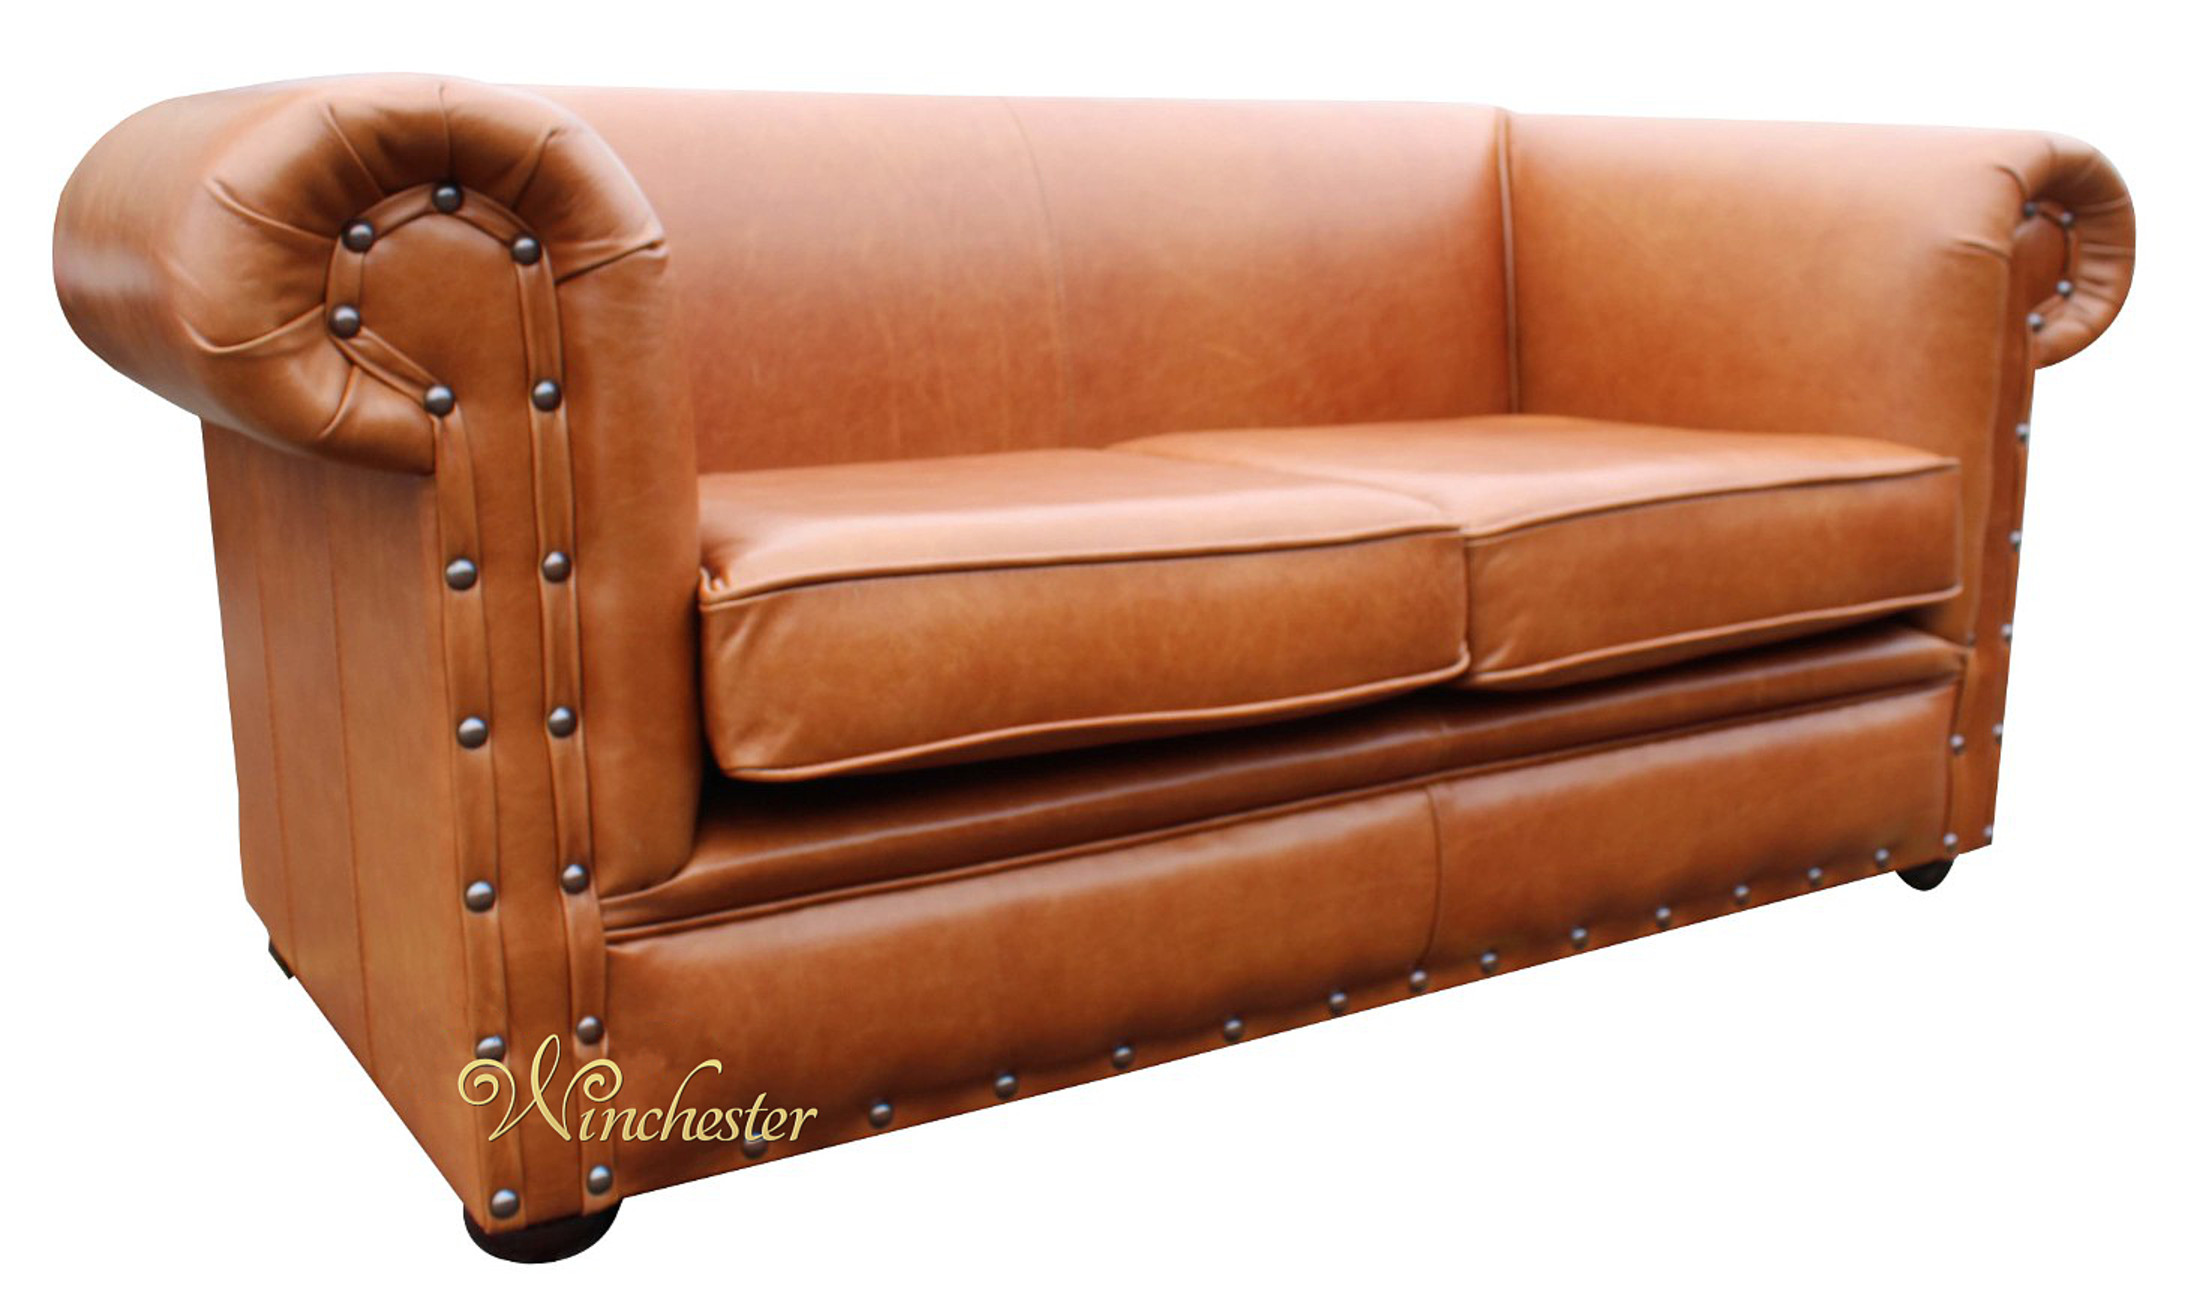 Chesterfield Decor 2 Seater Sofa Settee Old English Saddle Leather Wc